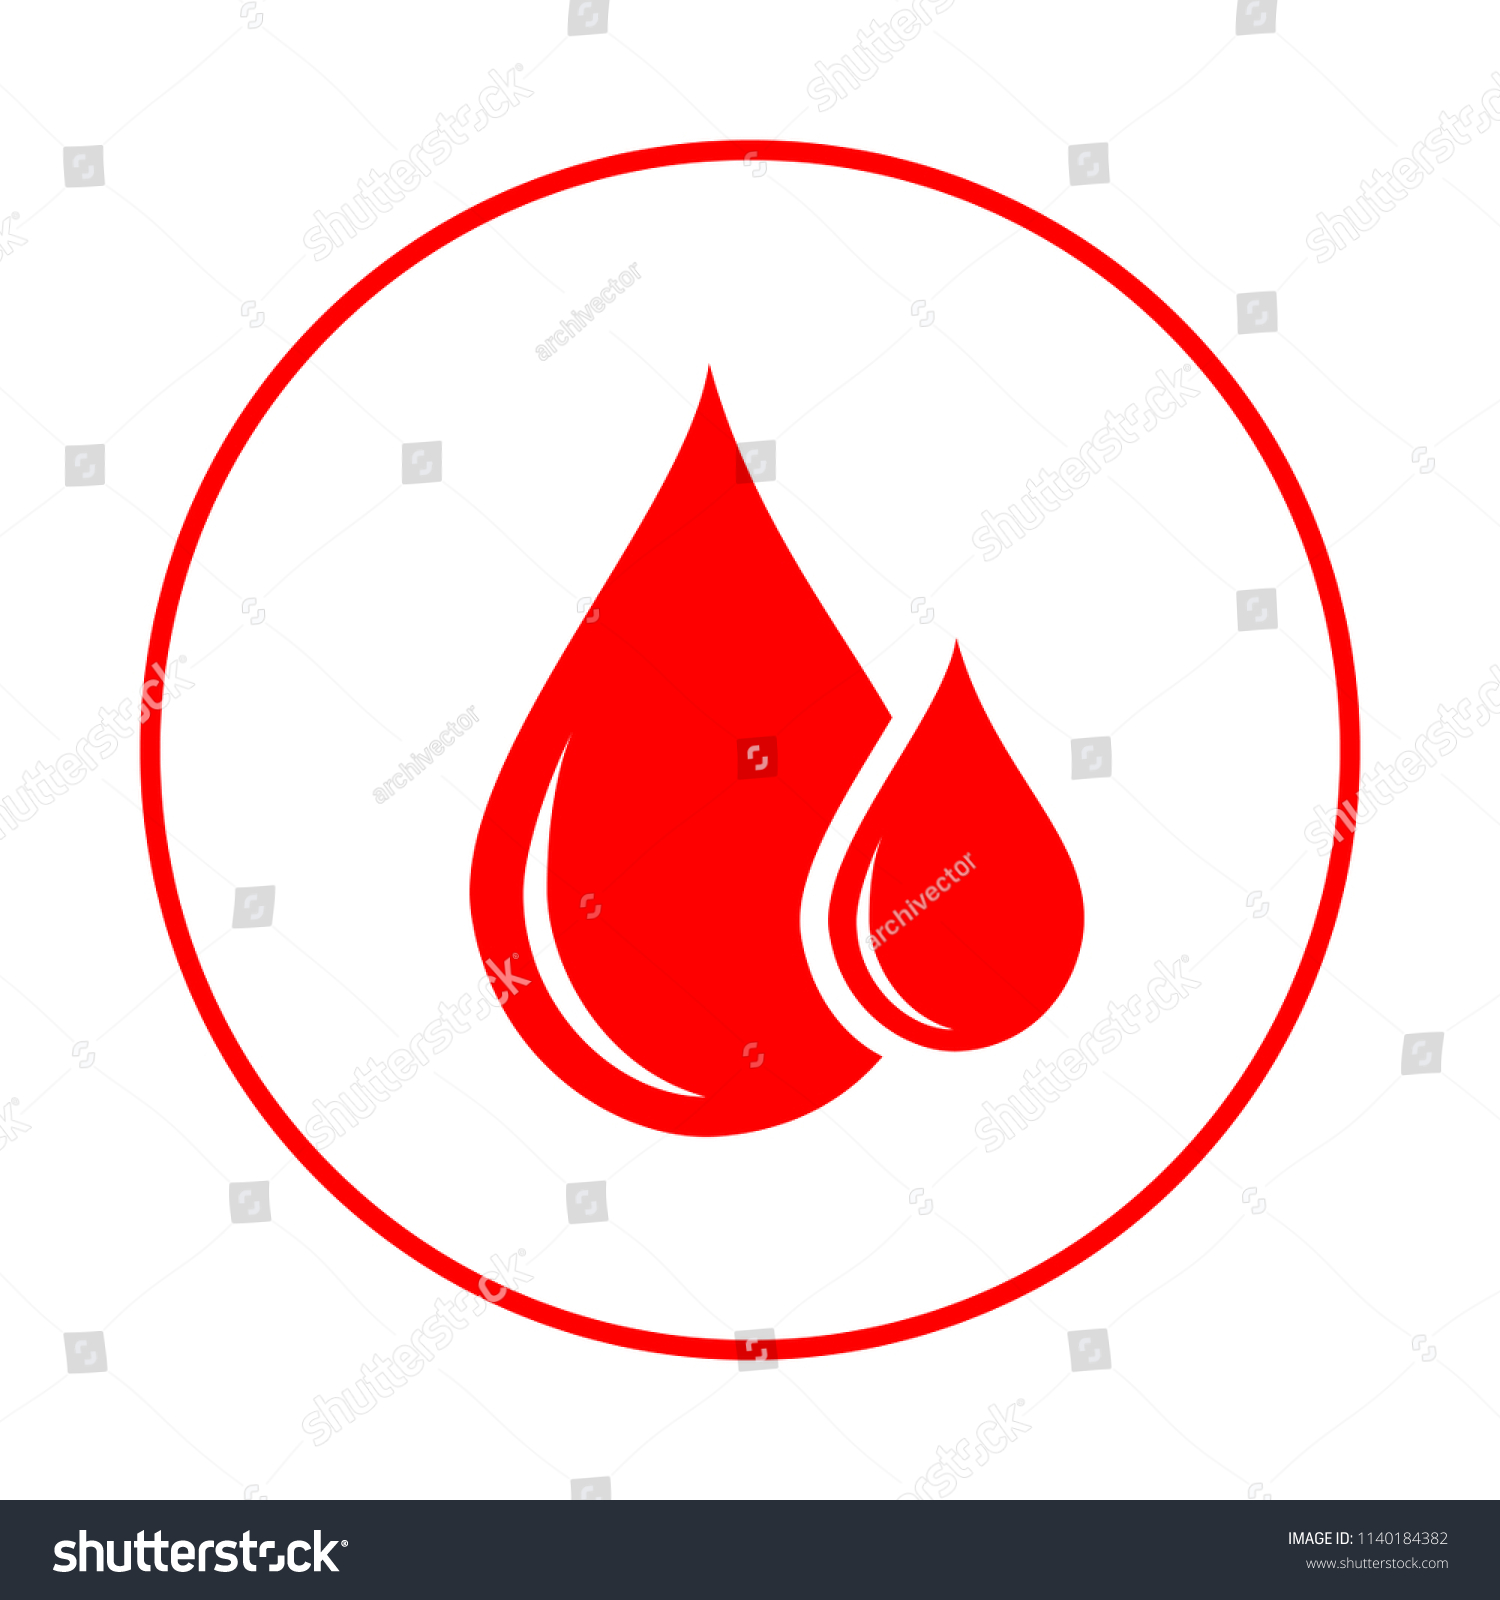 Donor Blood Icon Symbol Red Blood Stock Vector 1140184382 Shutterstock